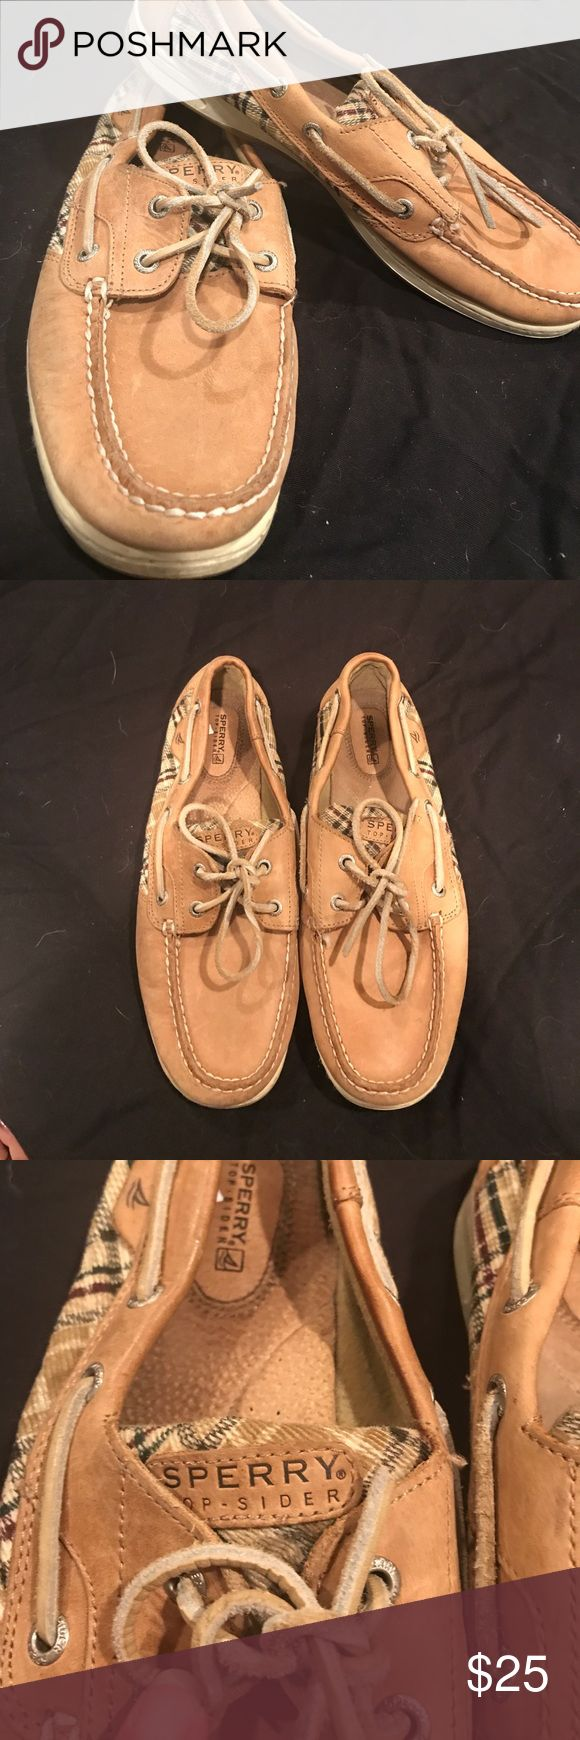 Sperry Top Sider Only worn a couple of times in great condition! They are super comfortable! Sperry Top-Sider Shoes